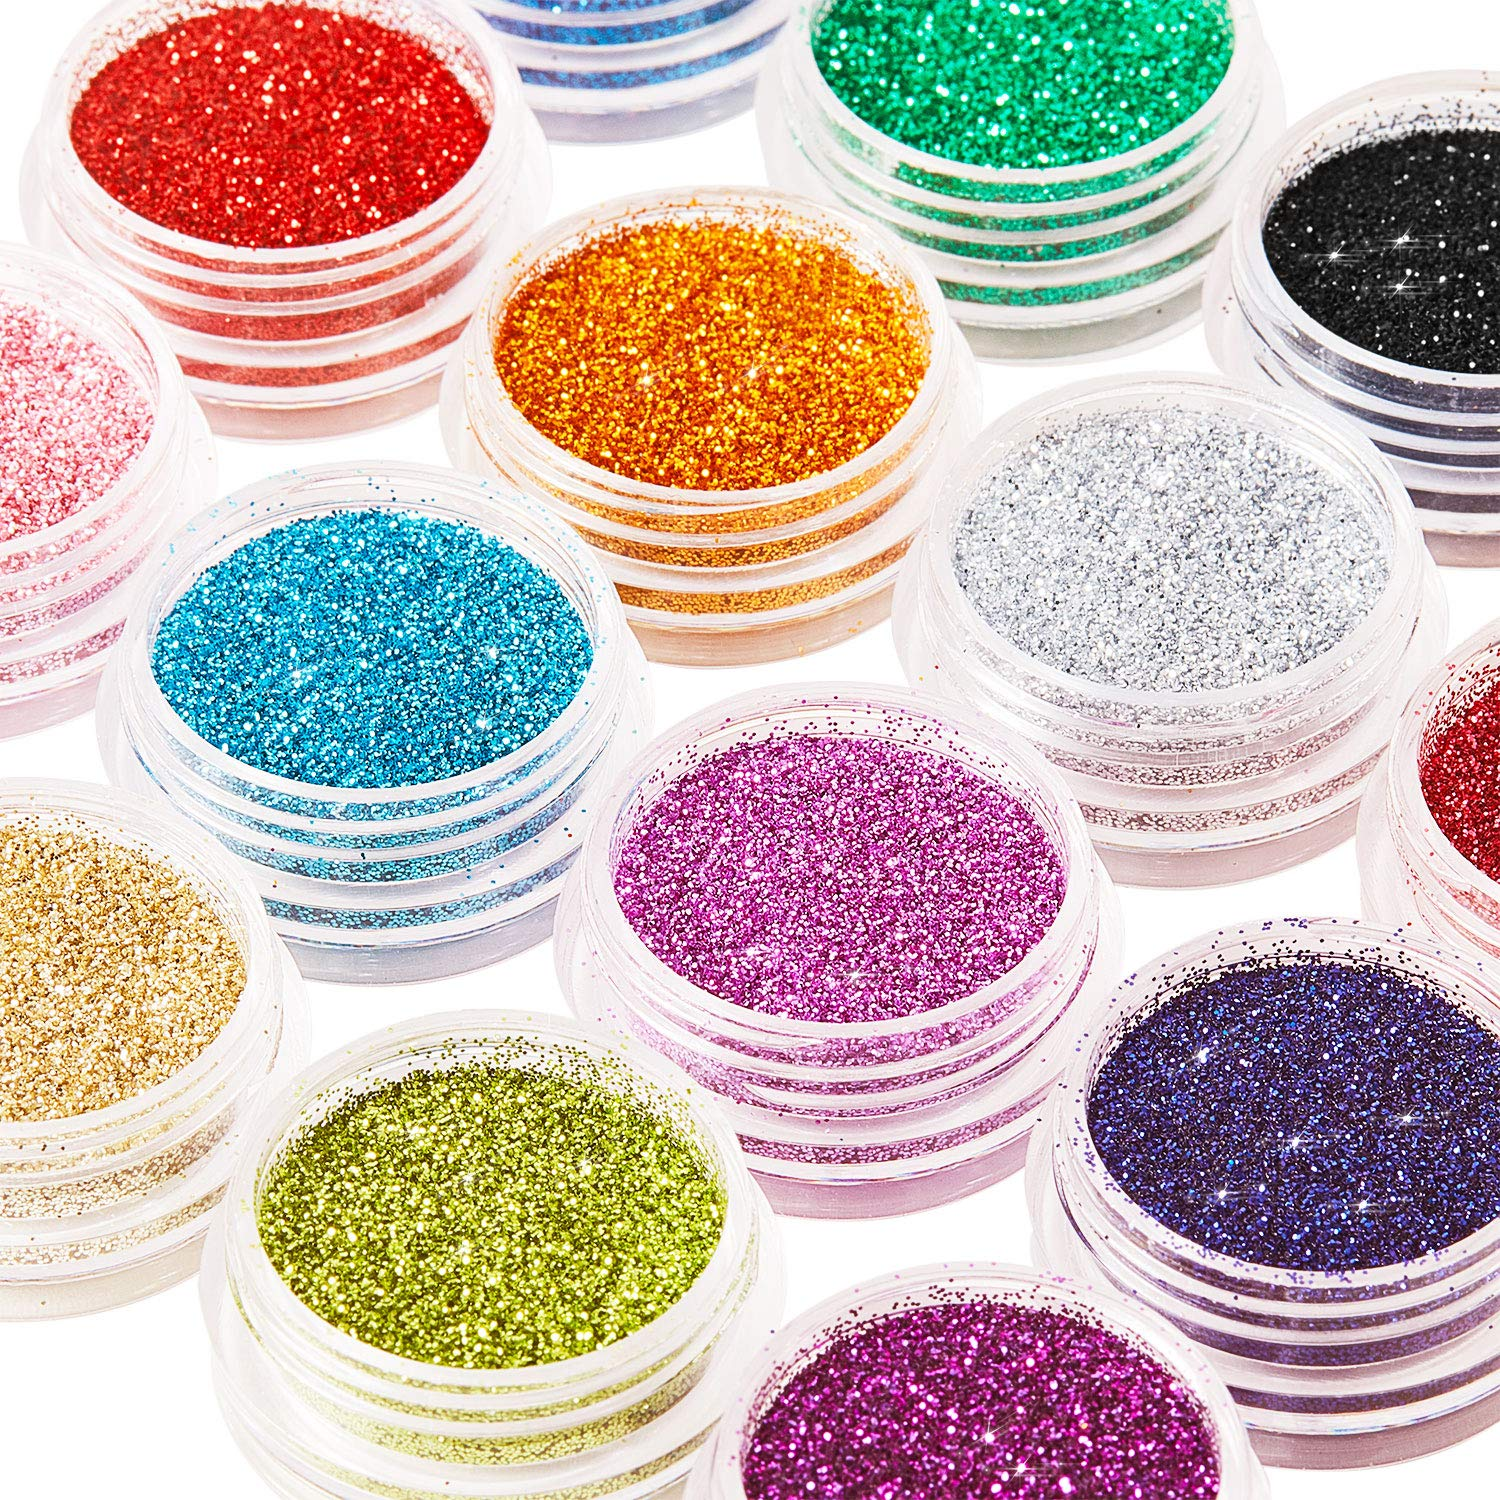 16 Colors Glitter Nail Sequins Powder Cosmetic Festival Chunky Body Manicure Craft Glitter for Nail Hair Face with 6 Small Brushes